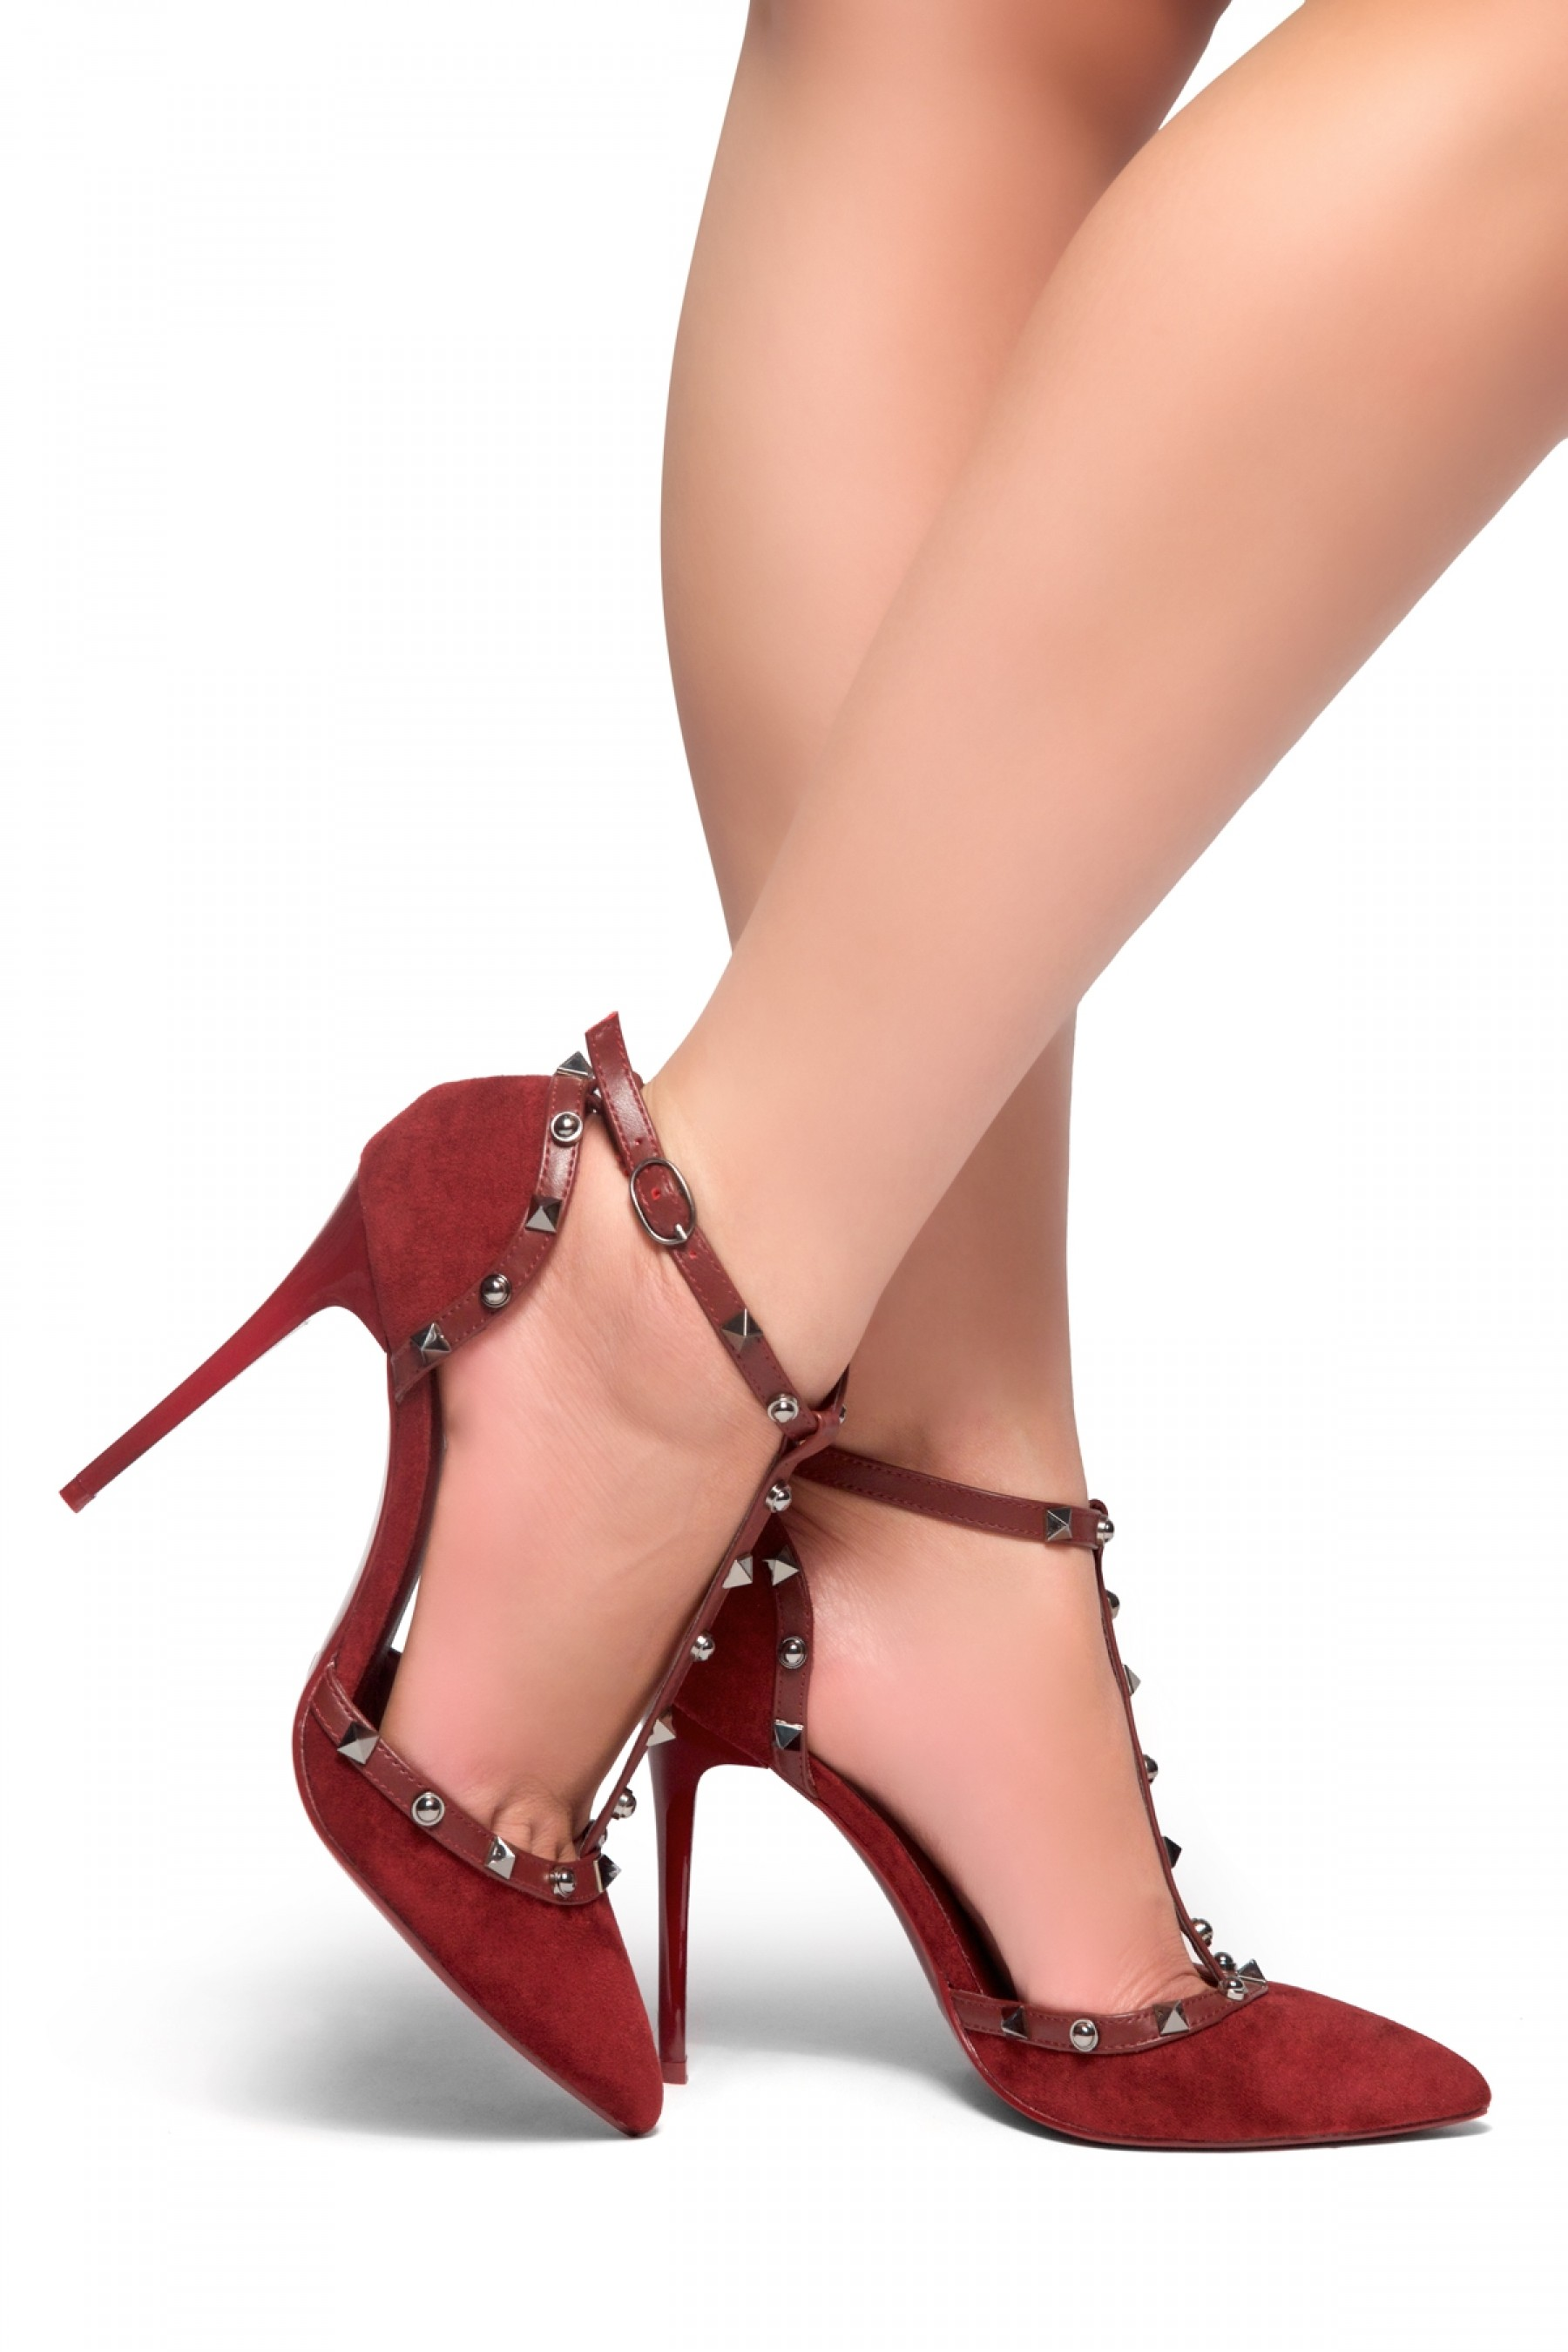 Laumea-Pointed toe, stiletto heel, ankle strap, Studs Pumps (Burgundy)